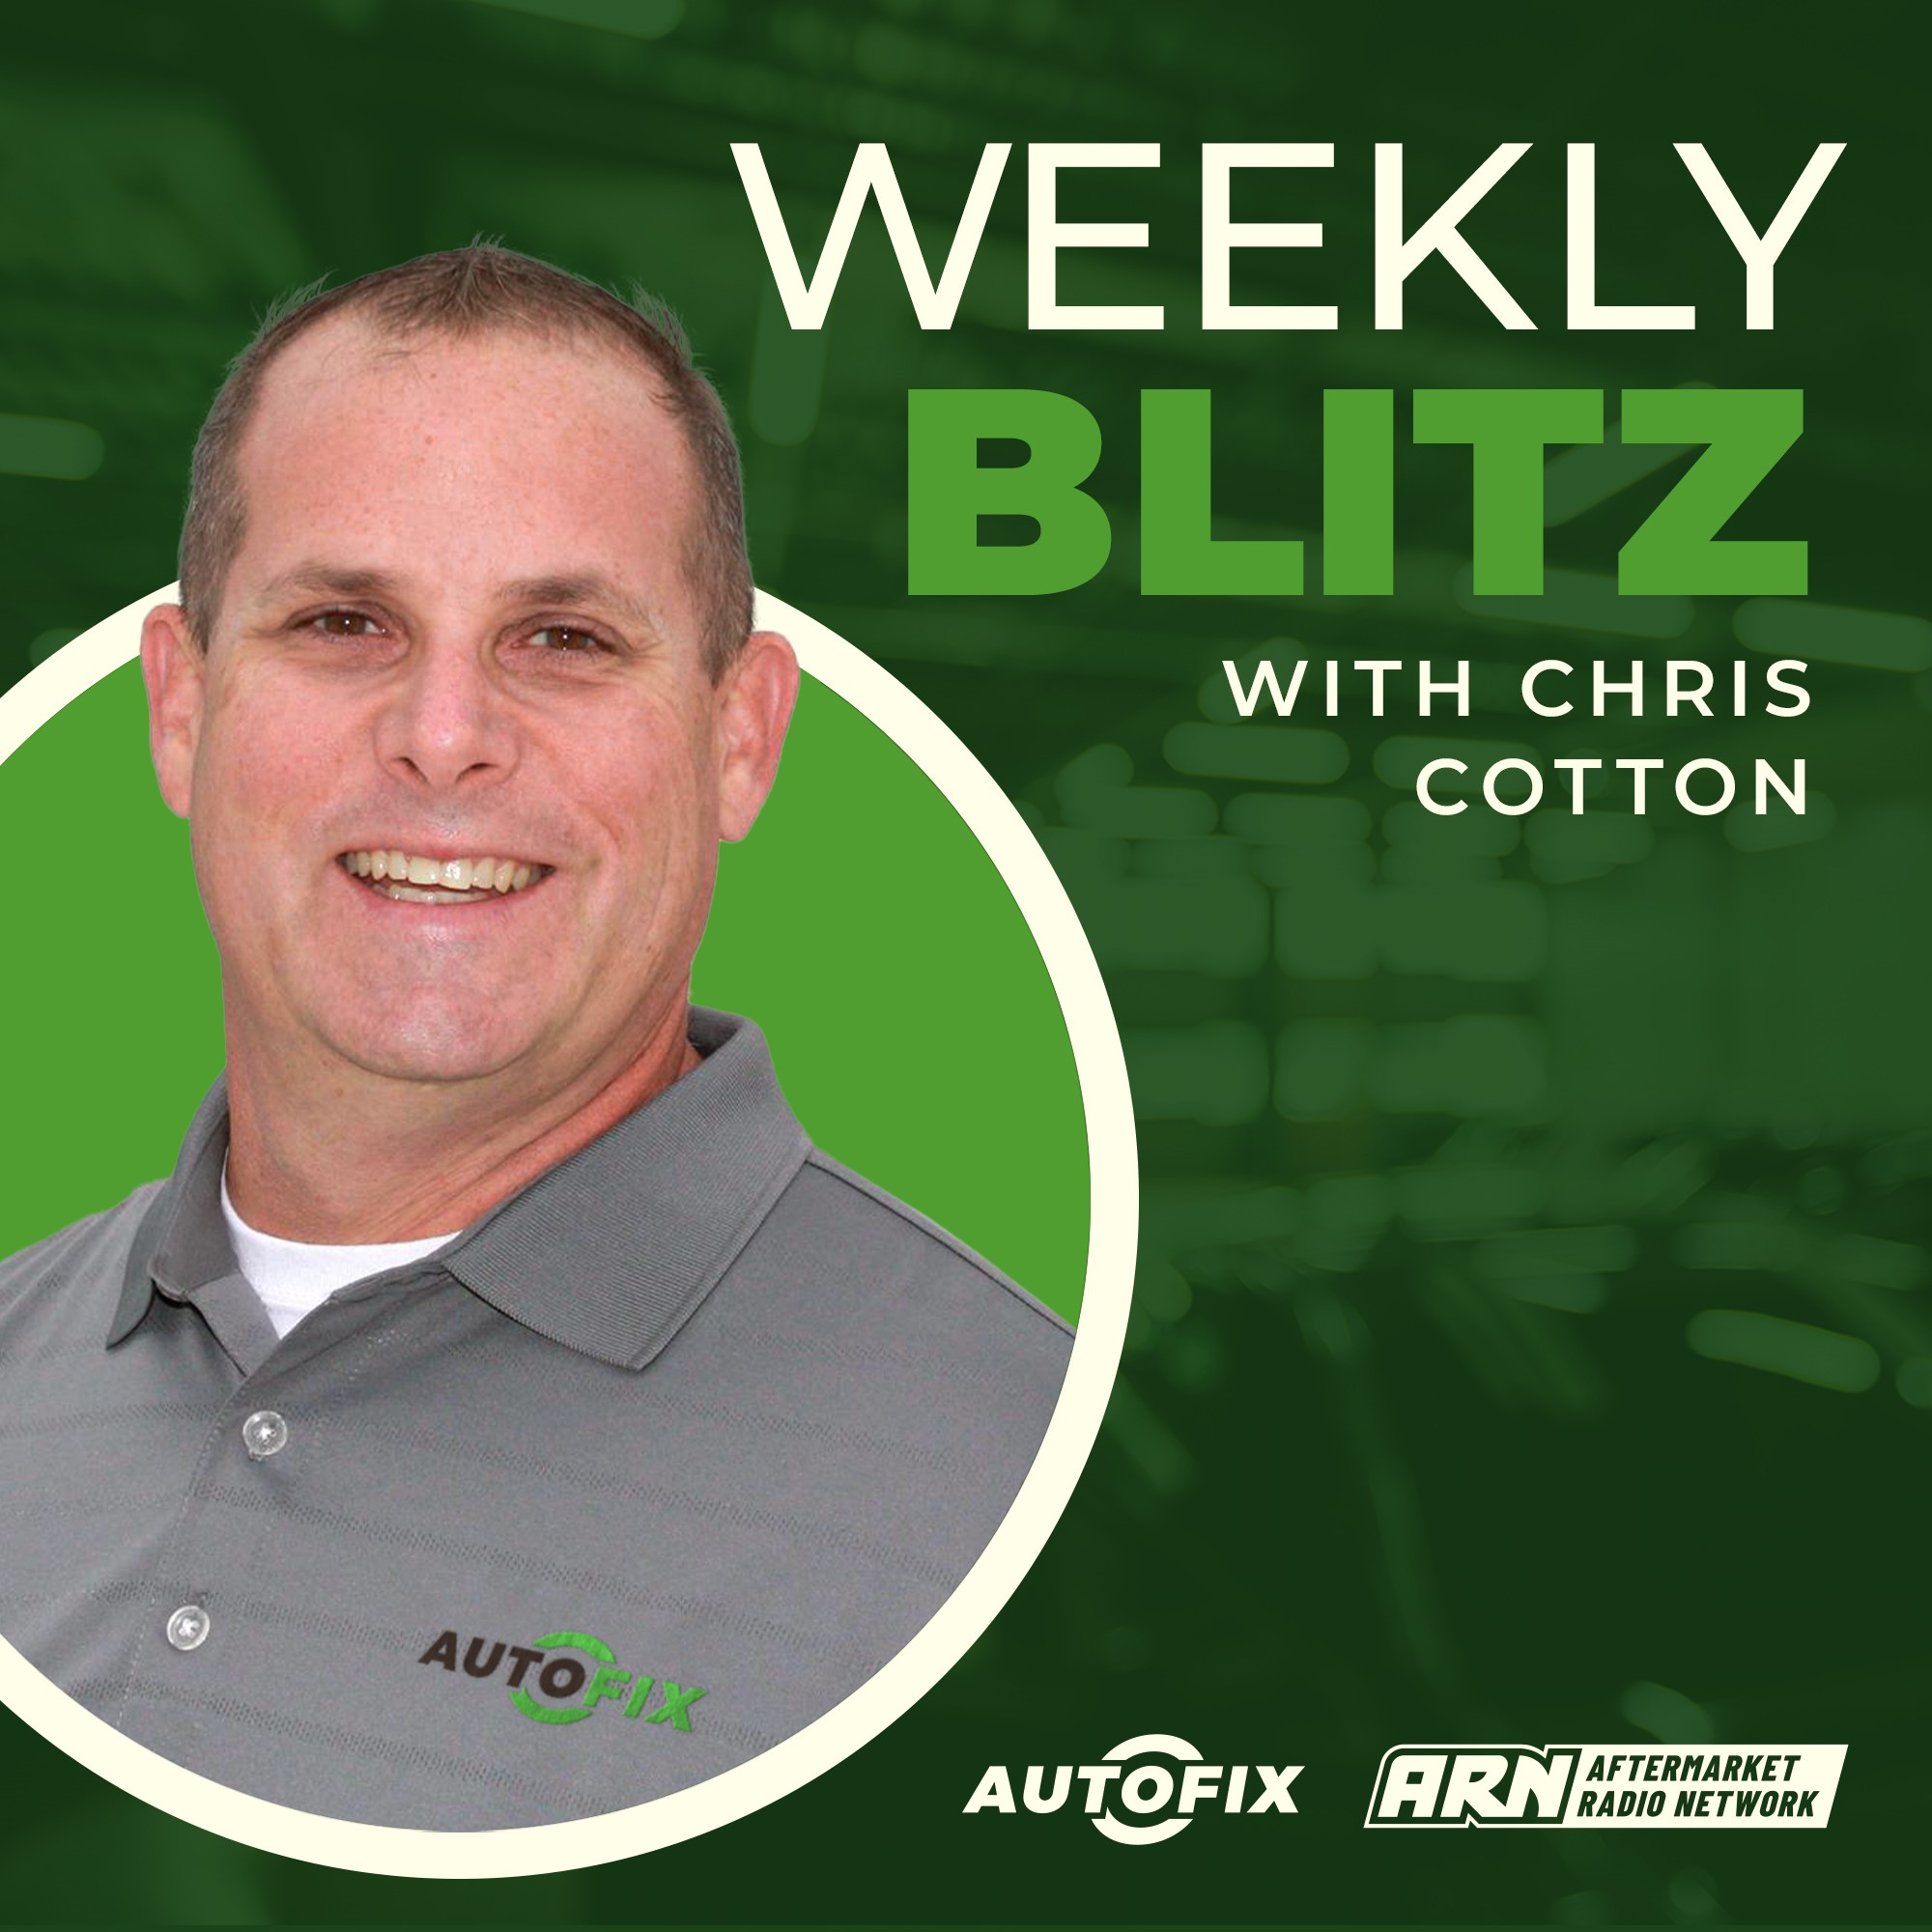 Artwork for podcast Chris Cotton Weekly Blitz